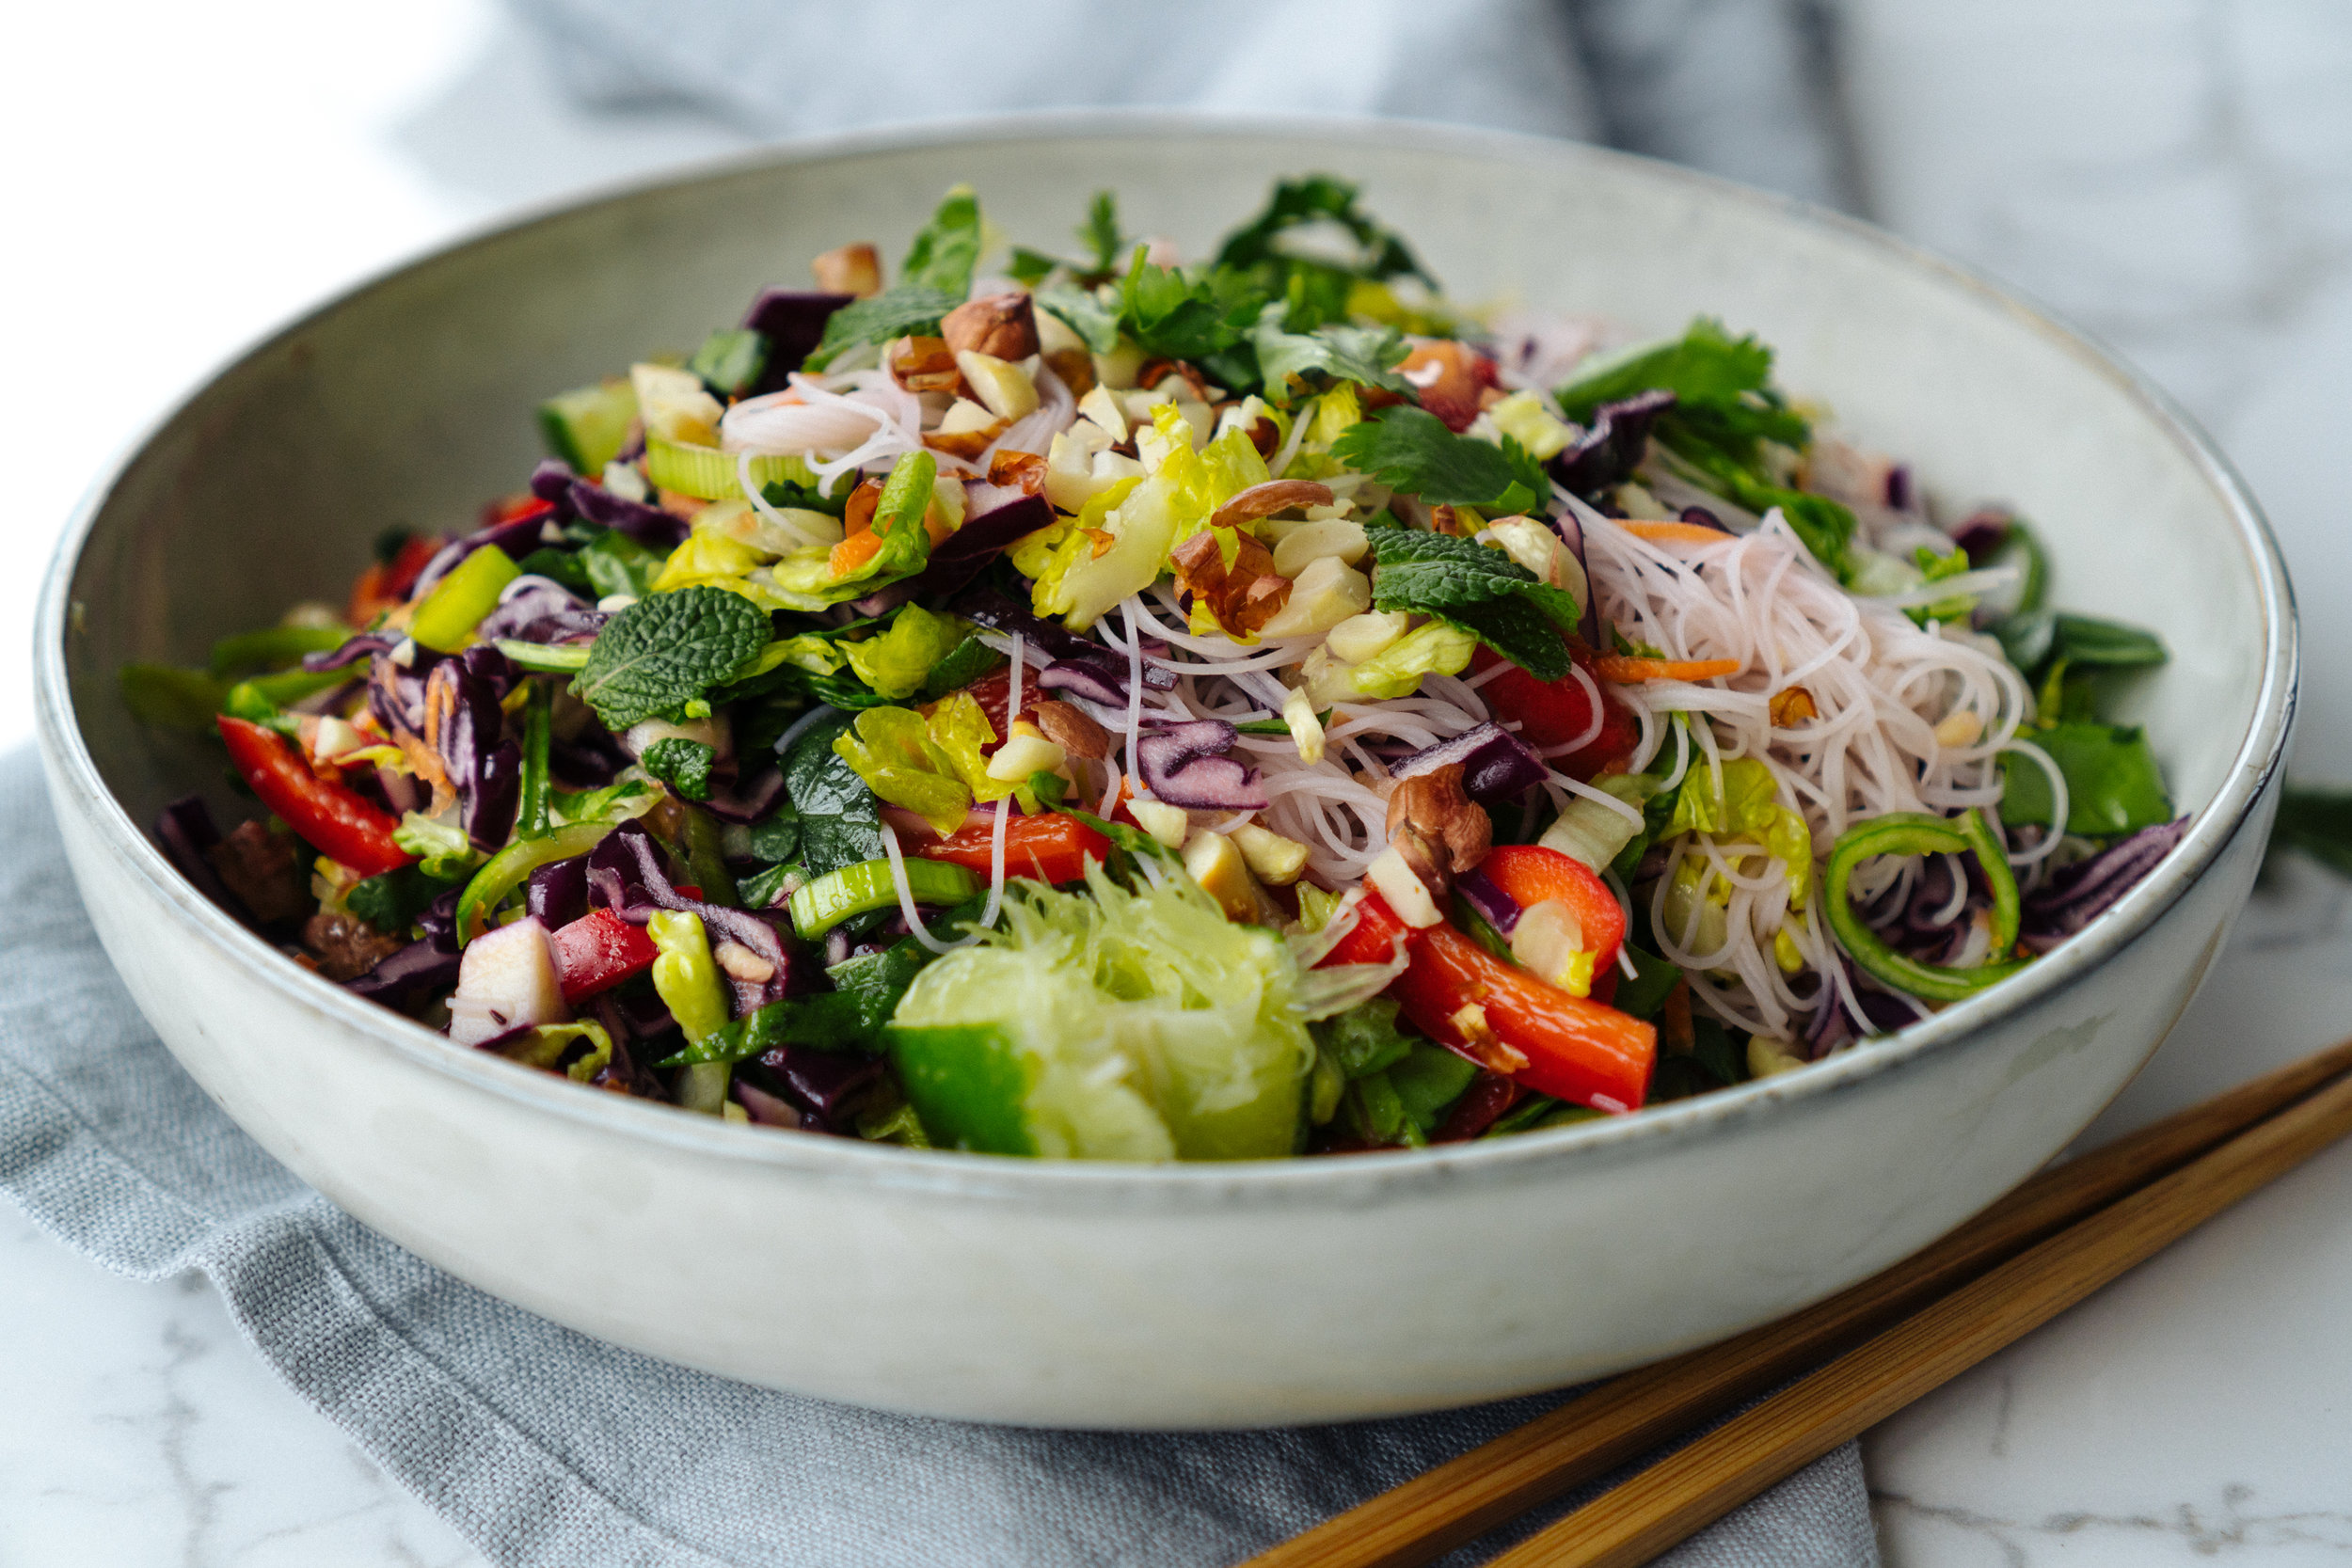 Asian_Rice_Noodle_Salad_with_Peanuts-2.jpg